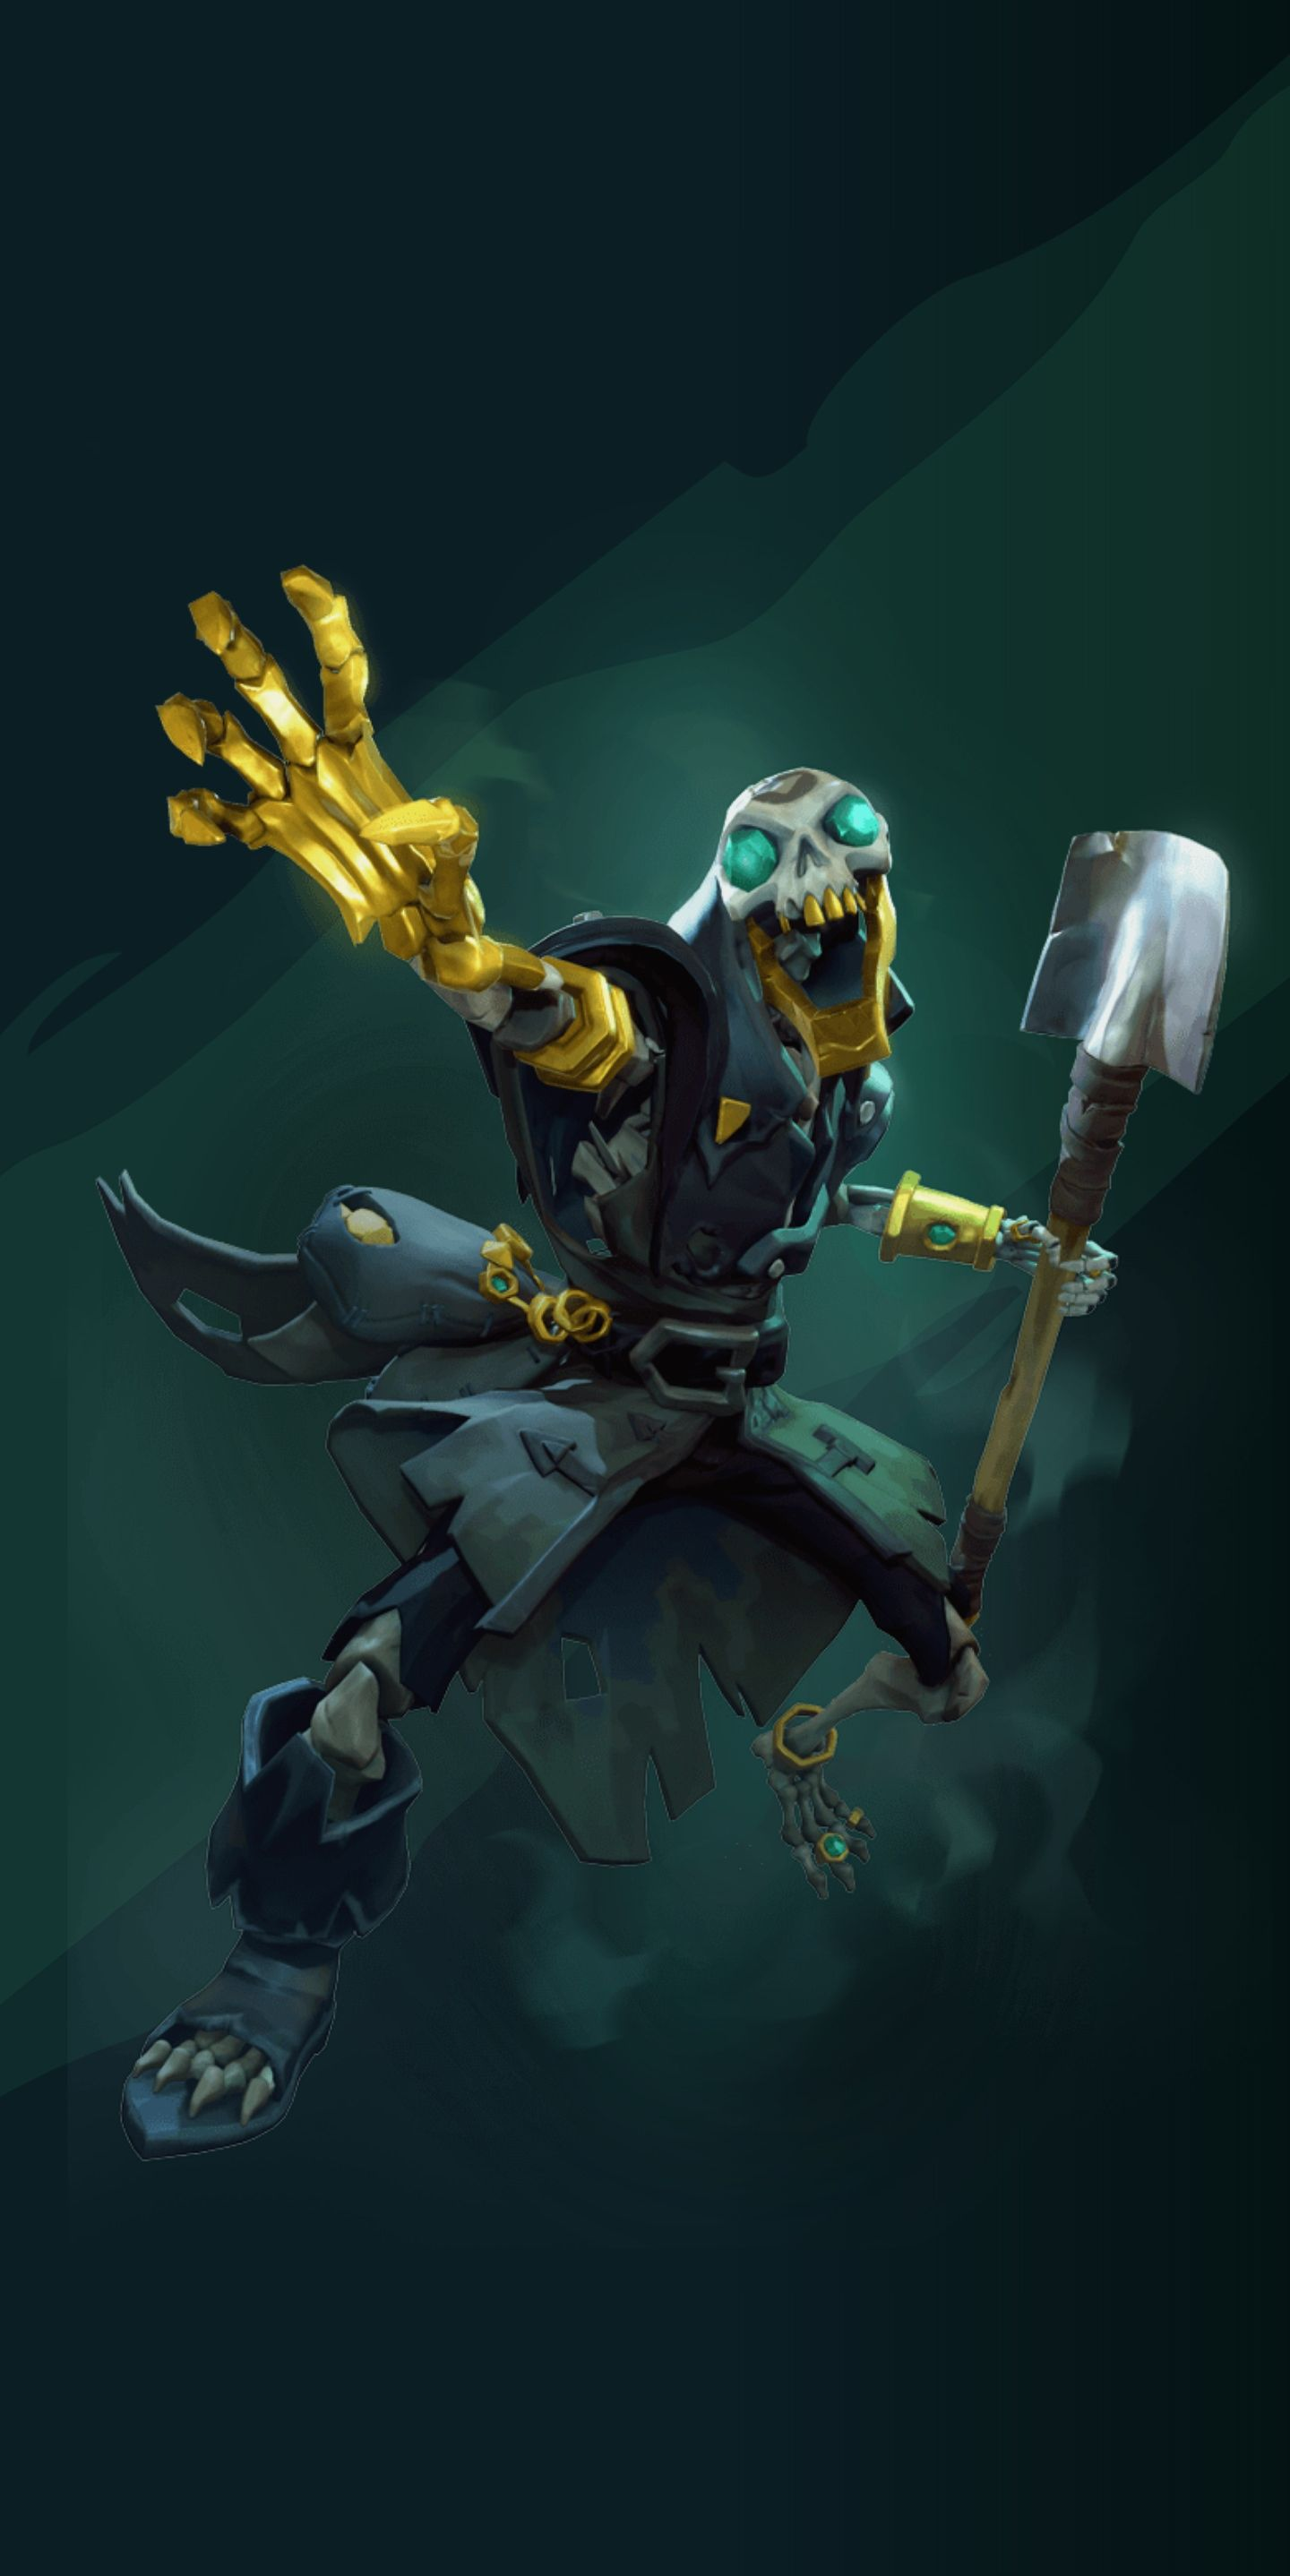 Sea of Thieves Wallpapers - Top Free Sea of Thieves ...